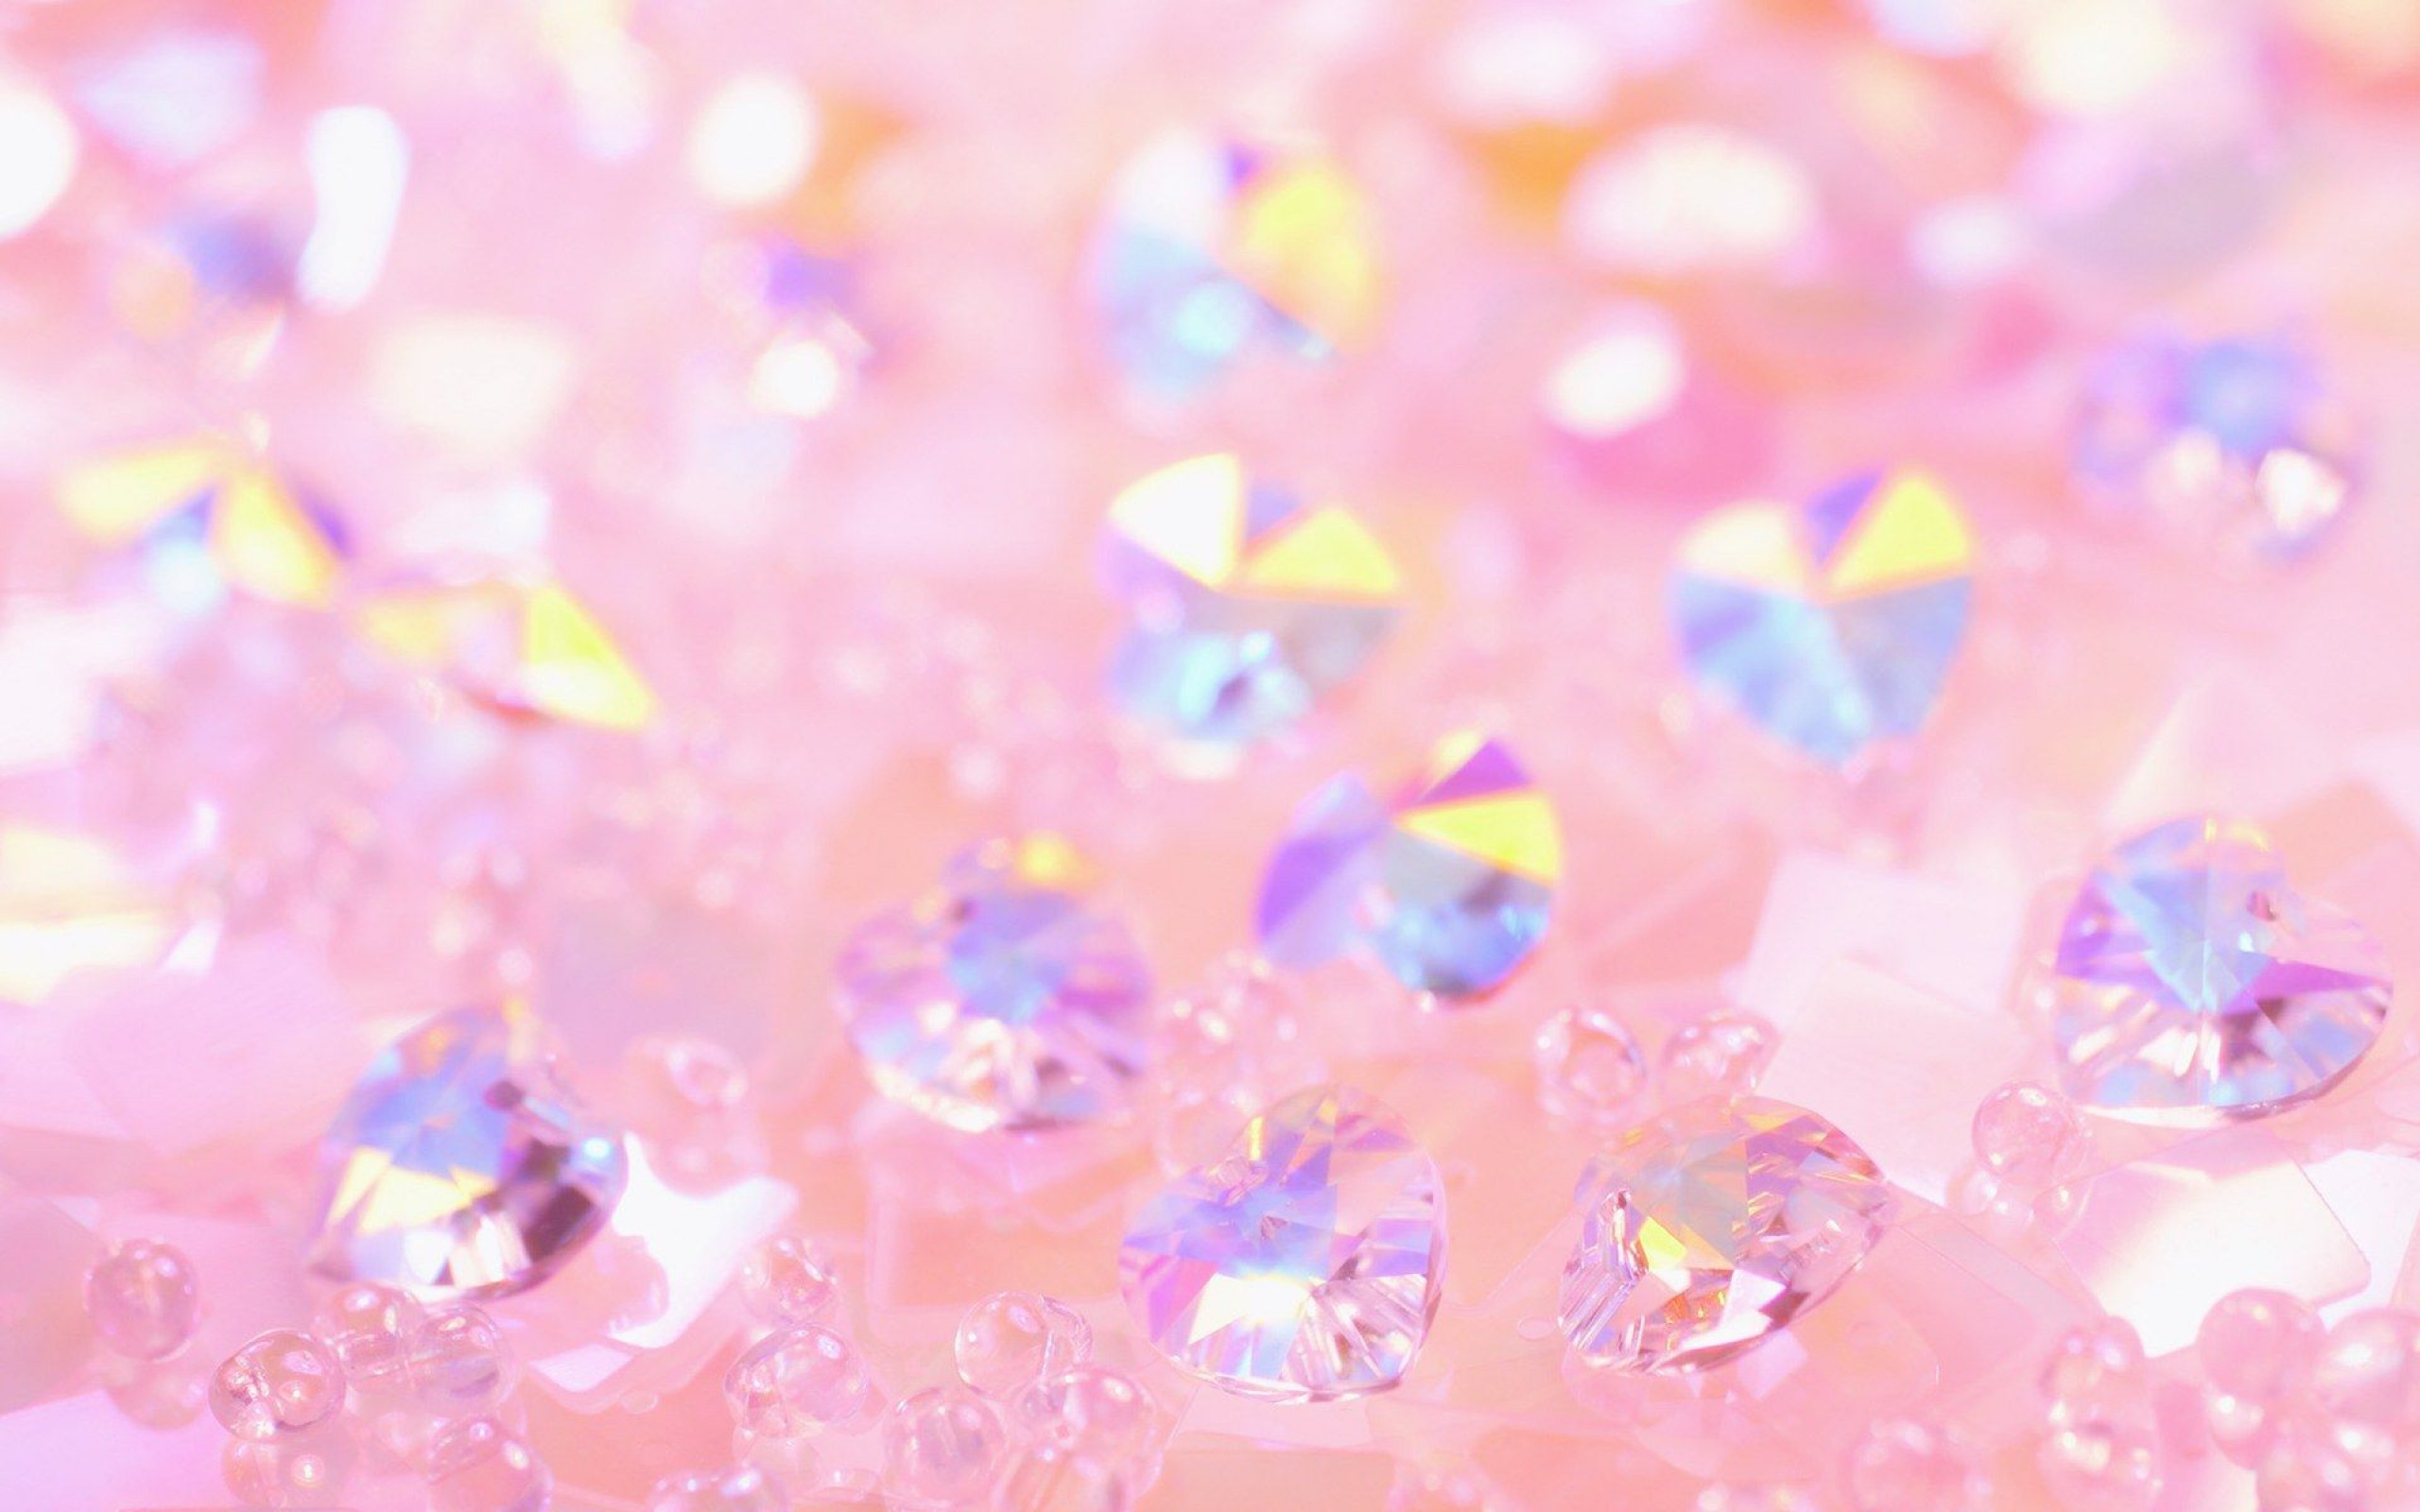 Res: 2560x1600, 1000+ ideas about Glitter Wallpaper on Pinterest Sparkle ... - HD Wallpapers